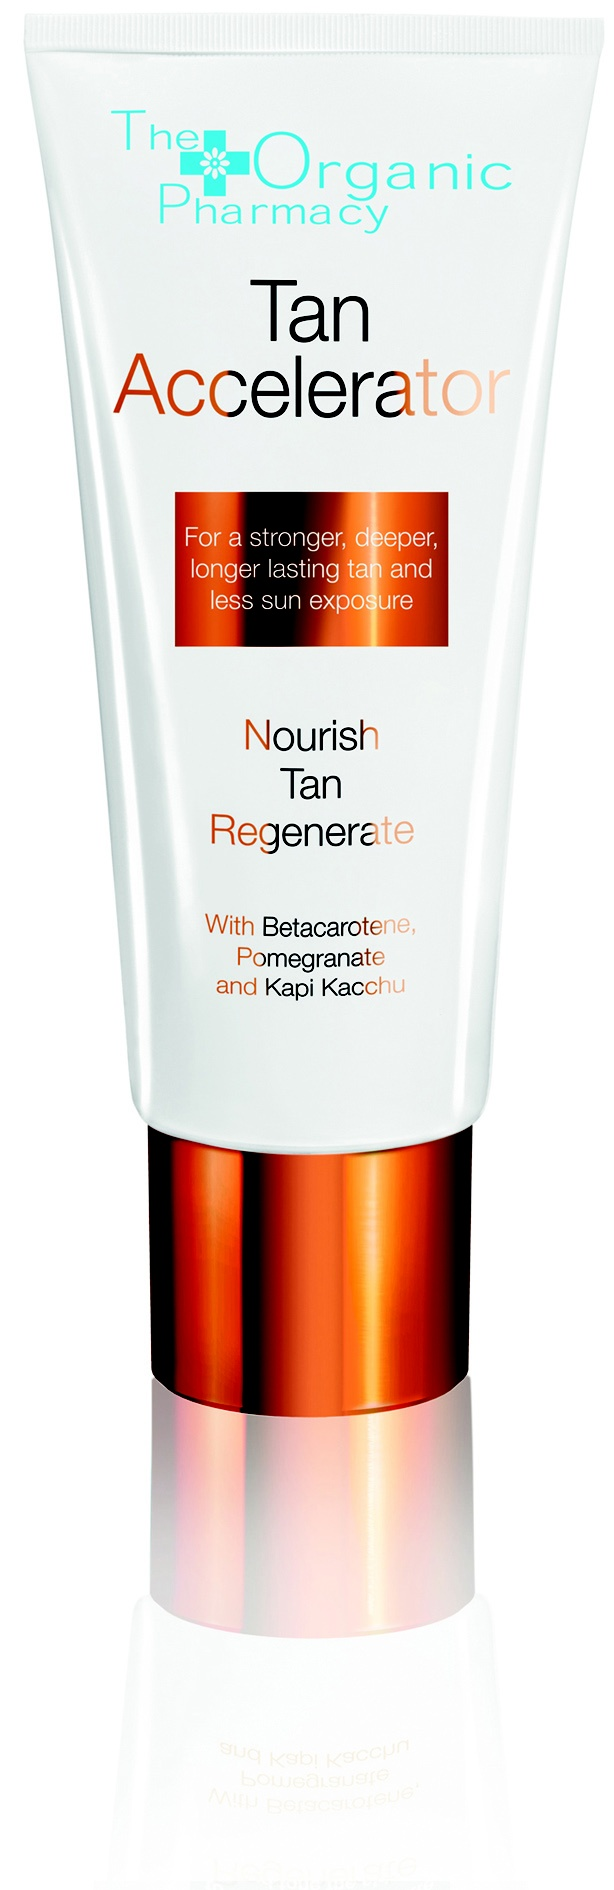 Tan Accelerator. Develop a rich deep tan faster with Betacarotene and Kapi Kacchu extract with less sun exposure.